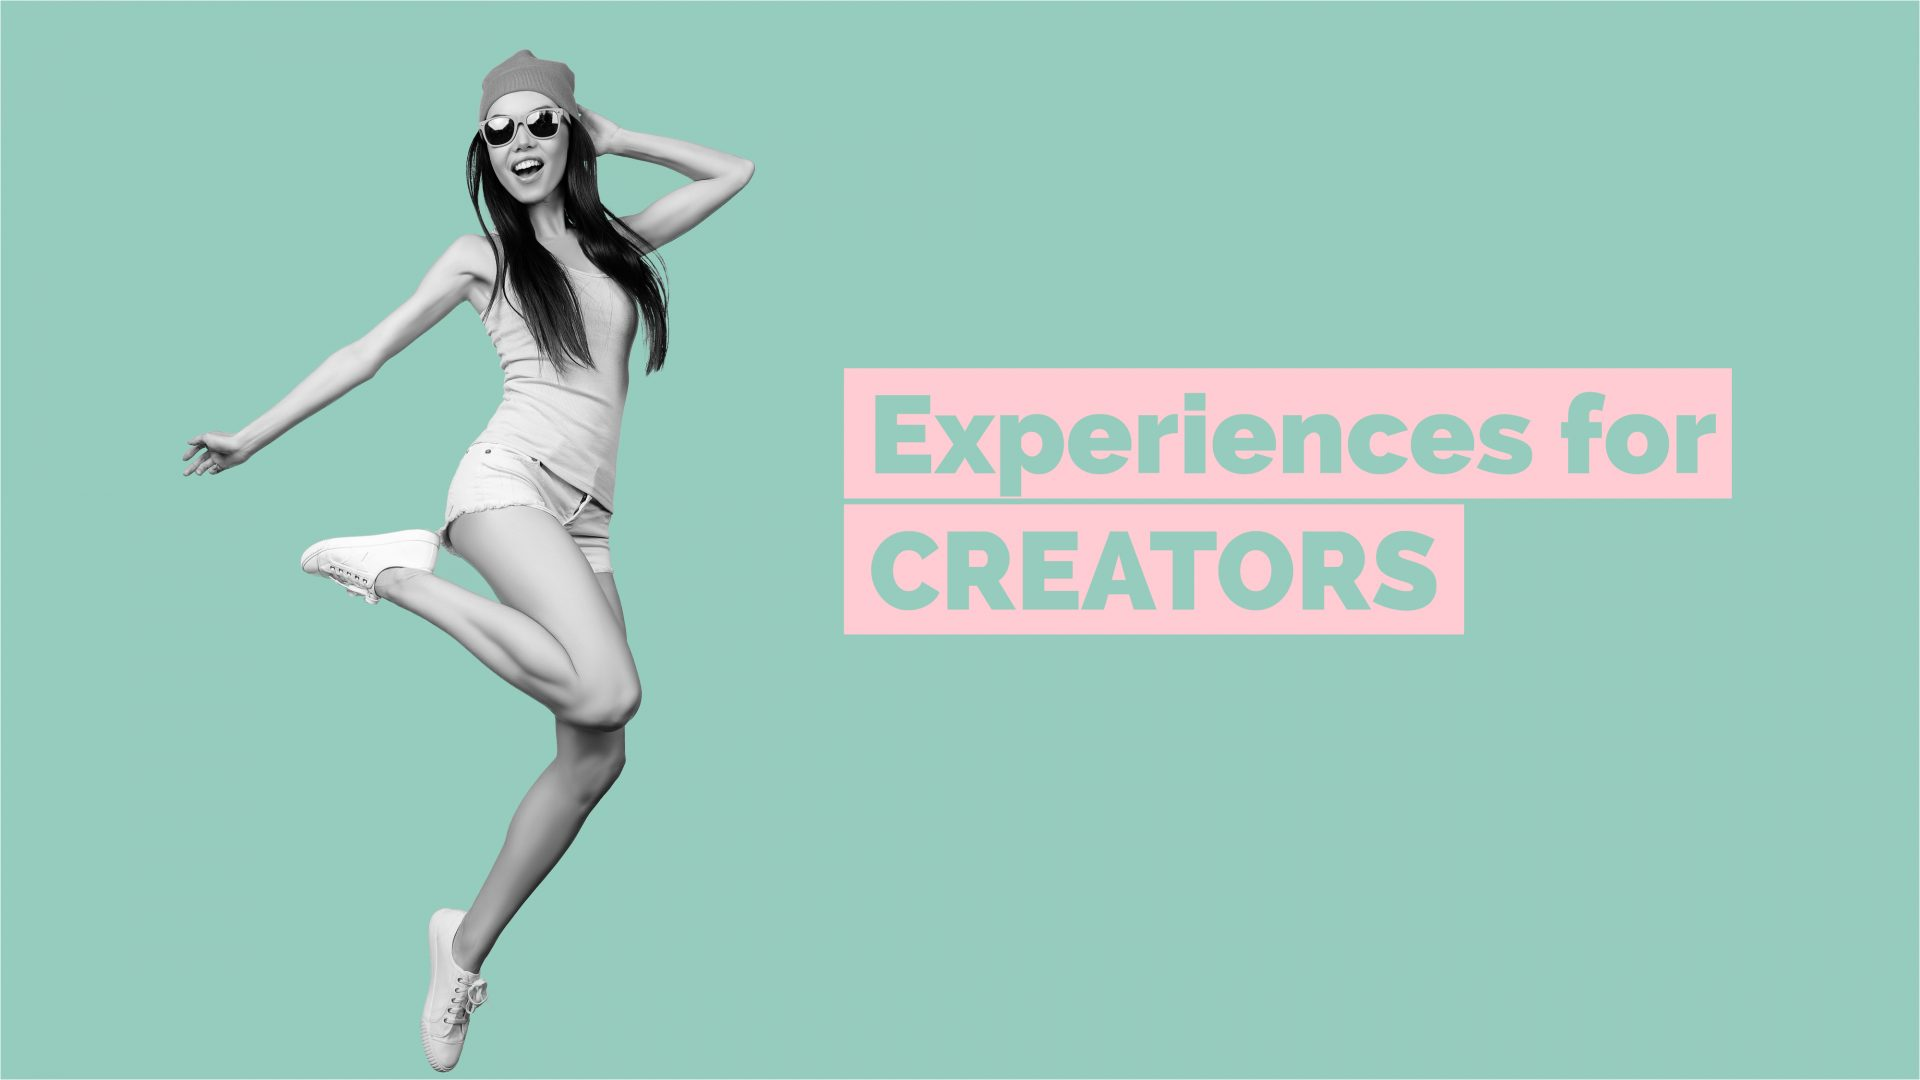 Woman jumping and smiling. Text over image says: Experiences for Creators